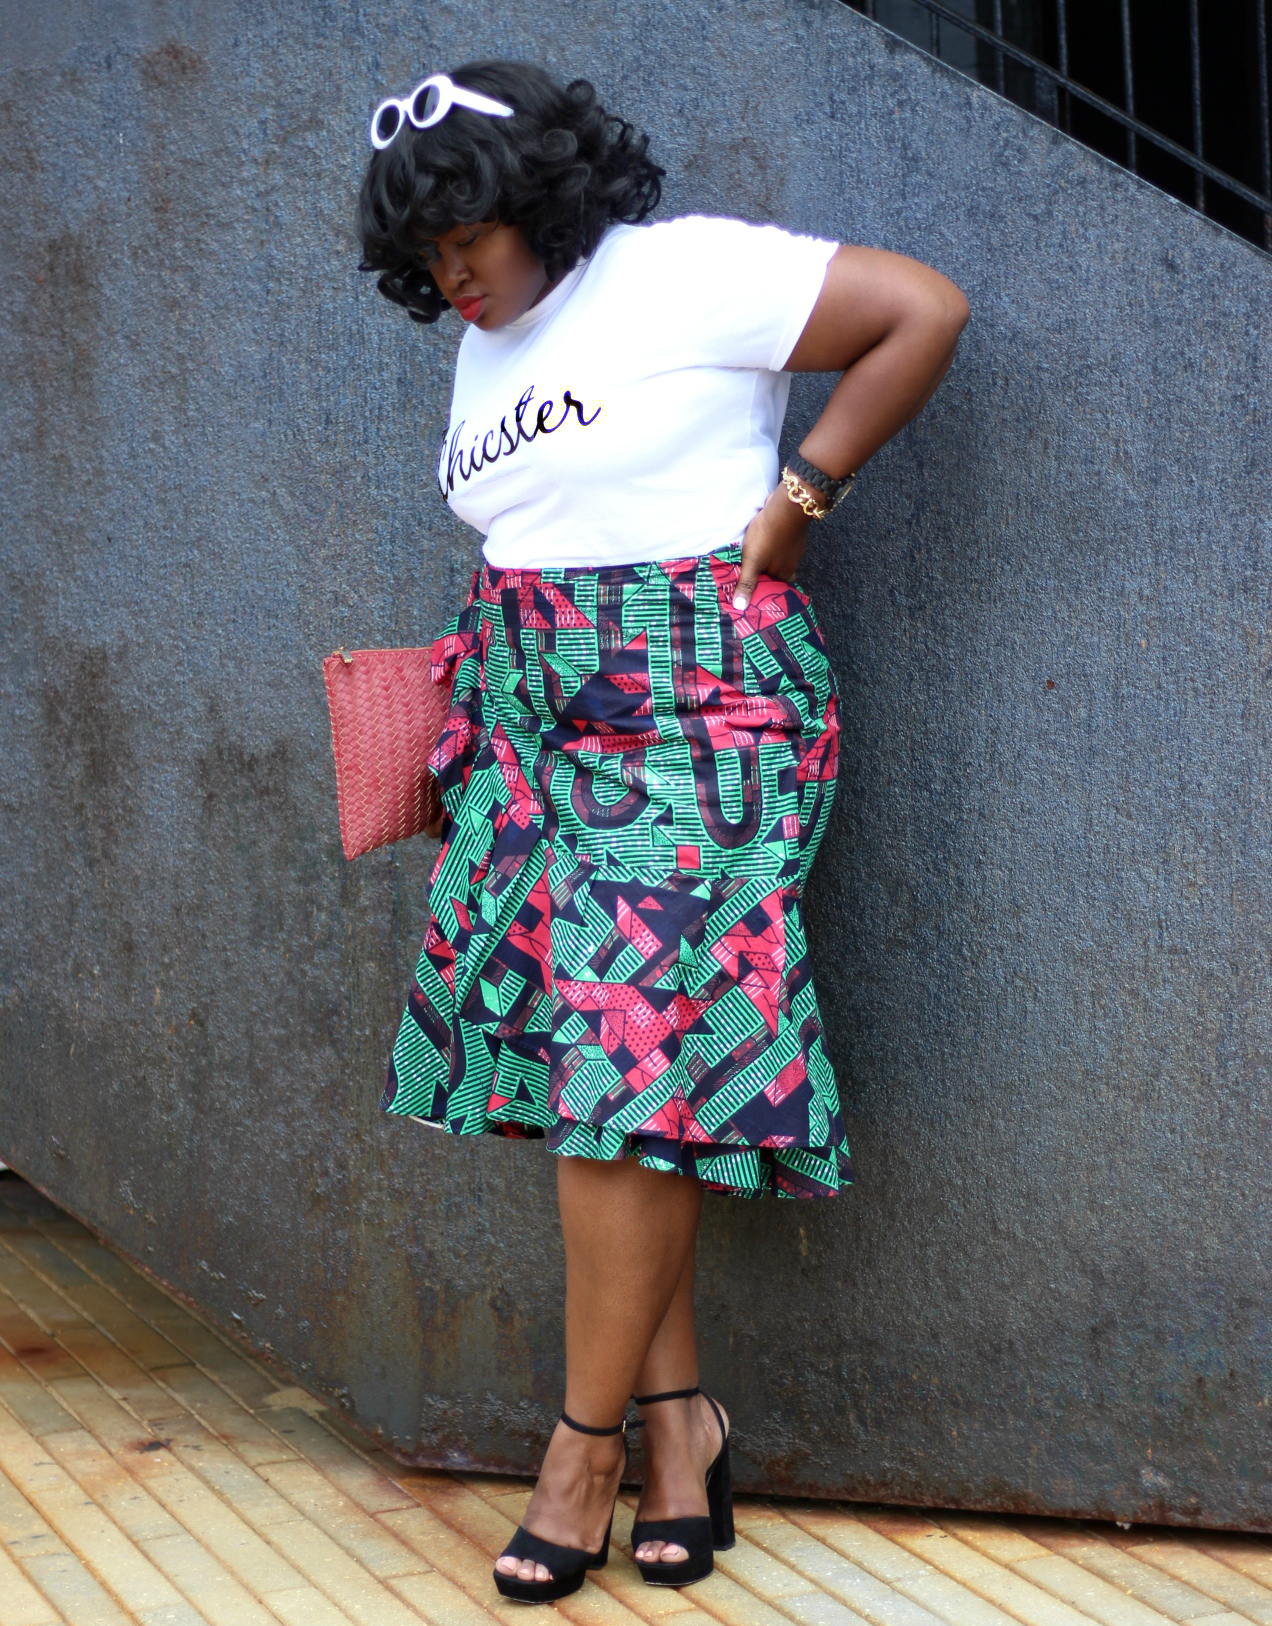 ruffle skirt chicster tee outfit